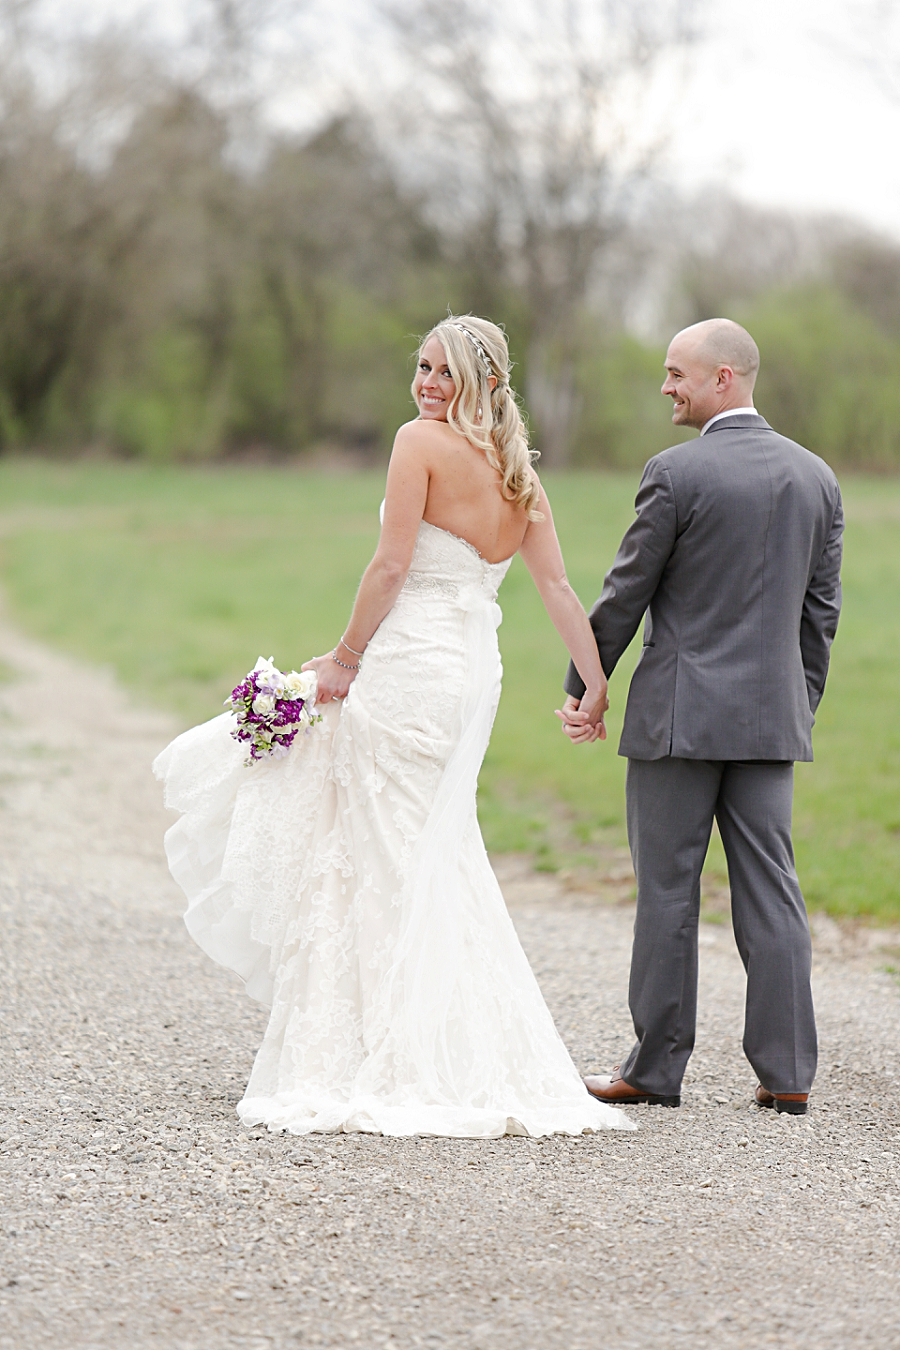 Cincinnati Wedding Photographer_We Are A Story_Kristen & Corey_2673.jpg